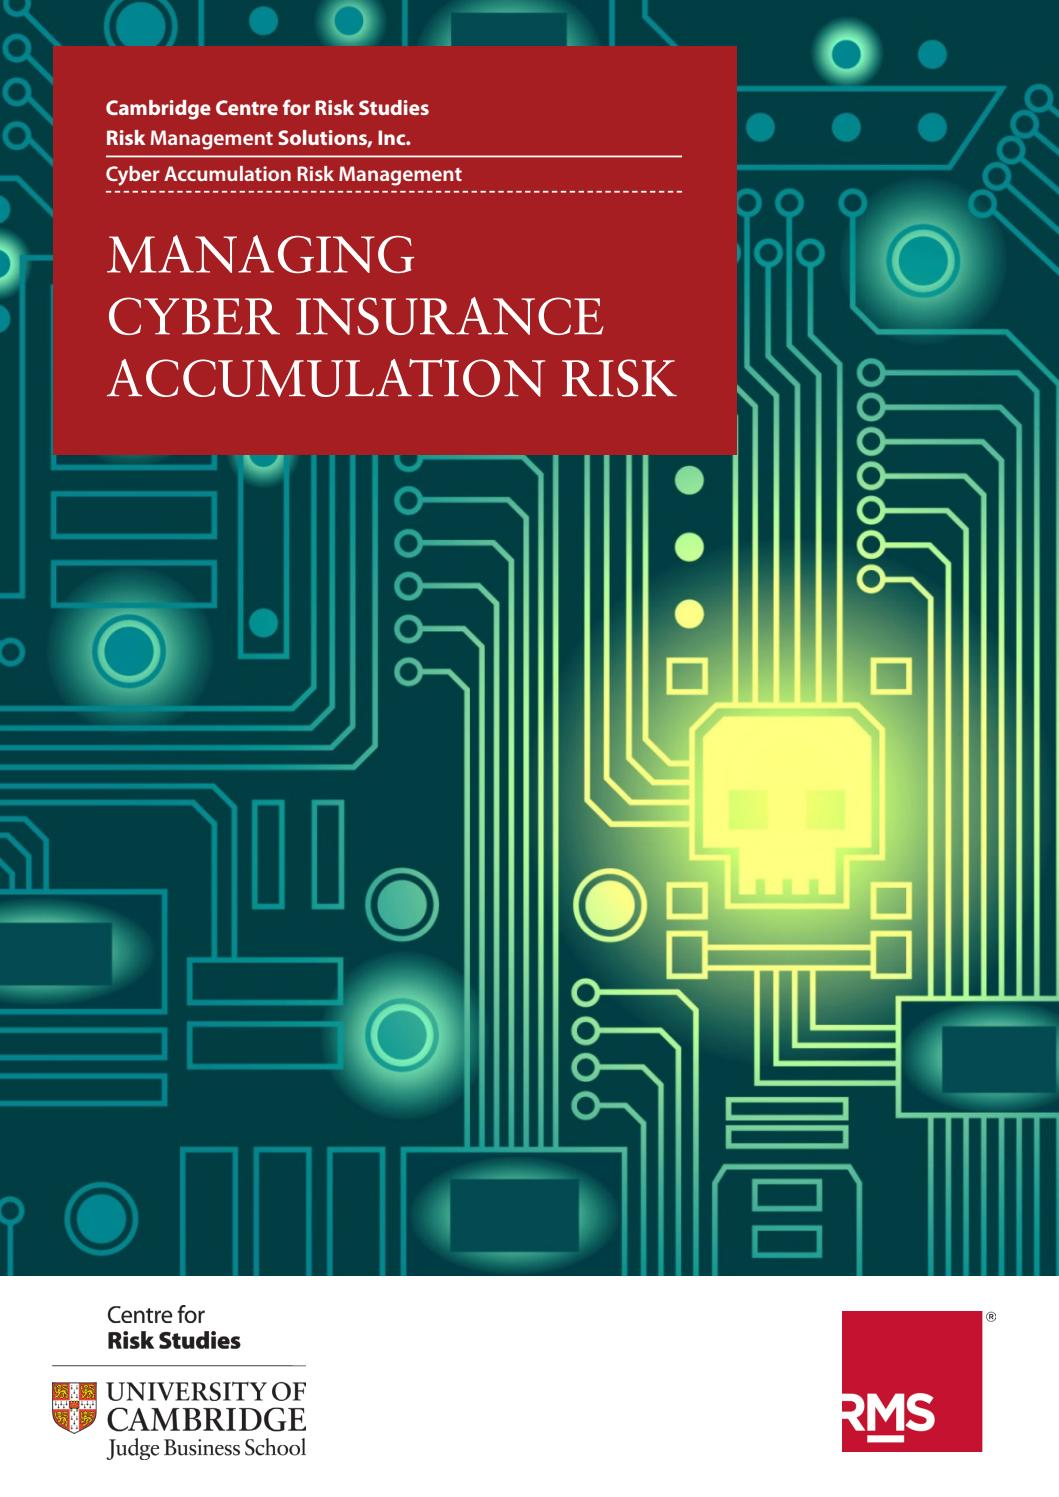 Managing Cyber Insurance Accumulation Risk by Cambridge